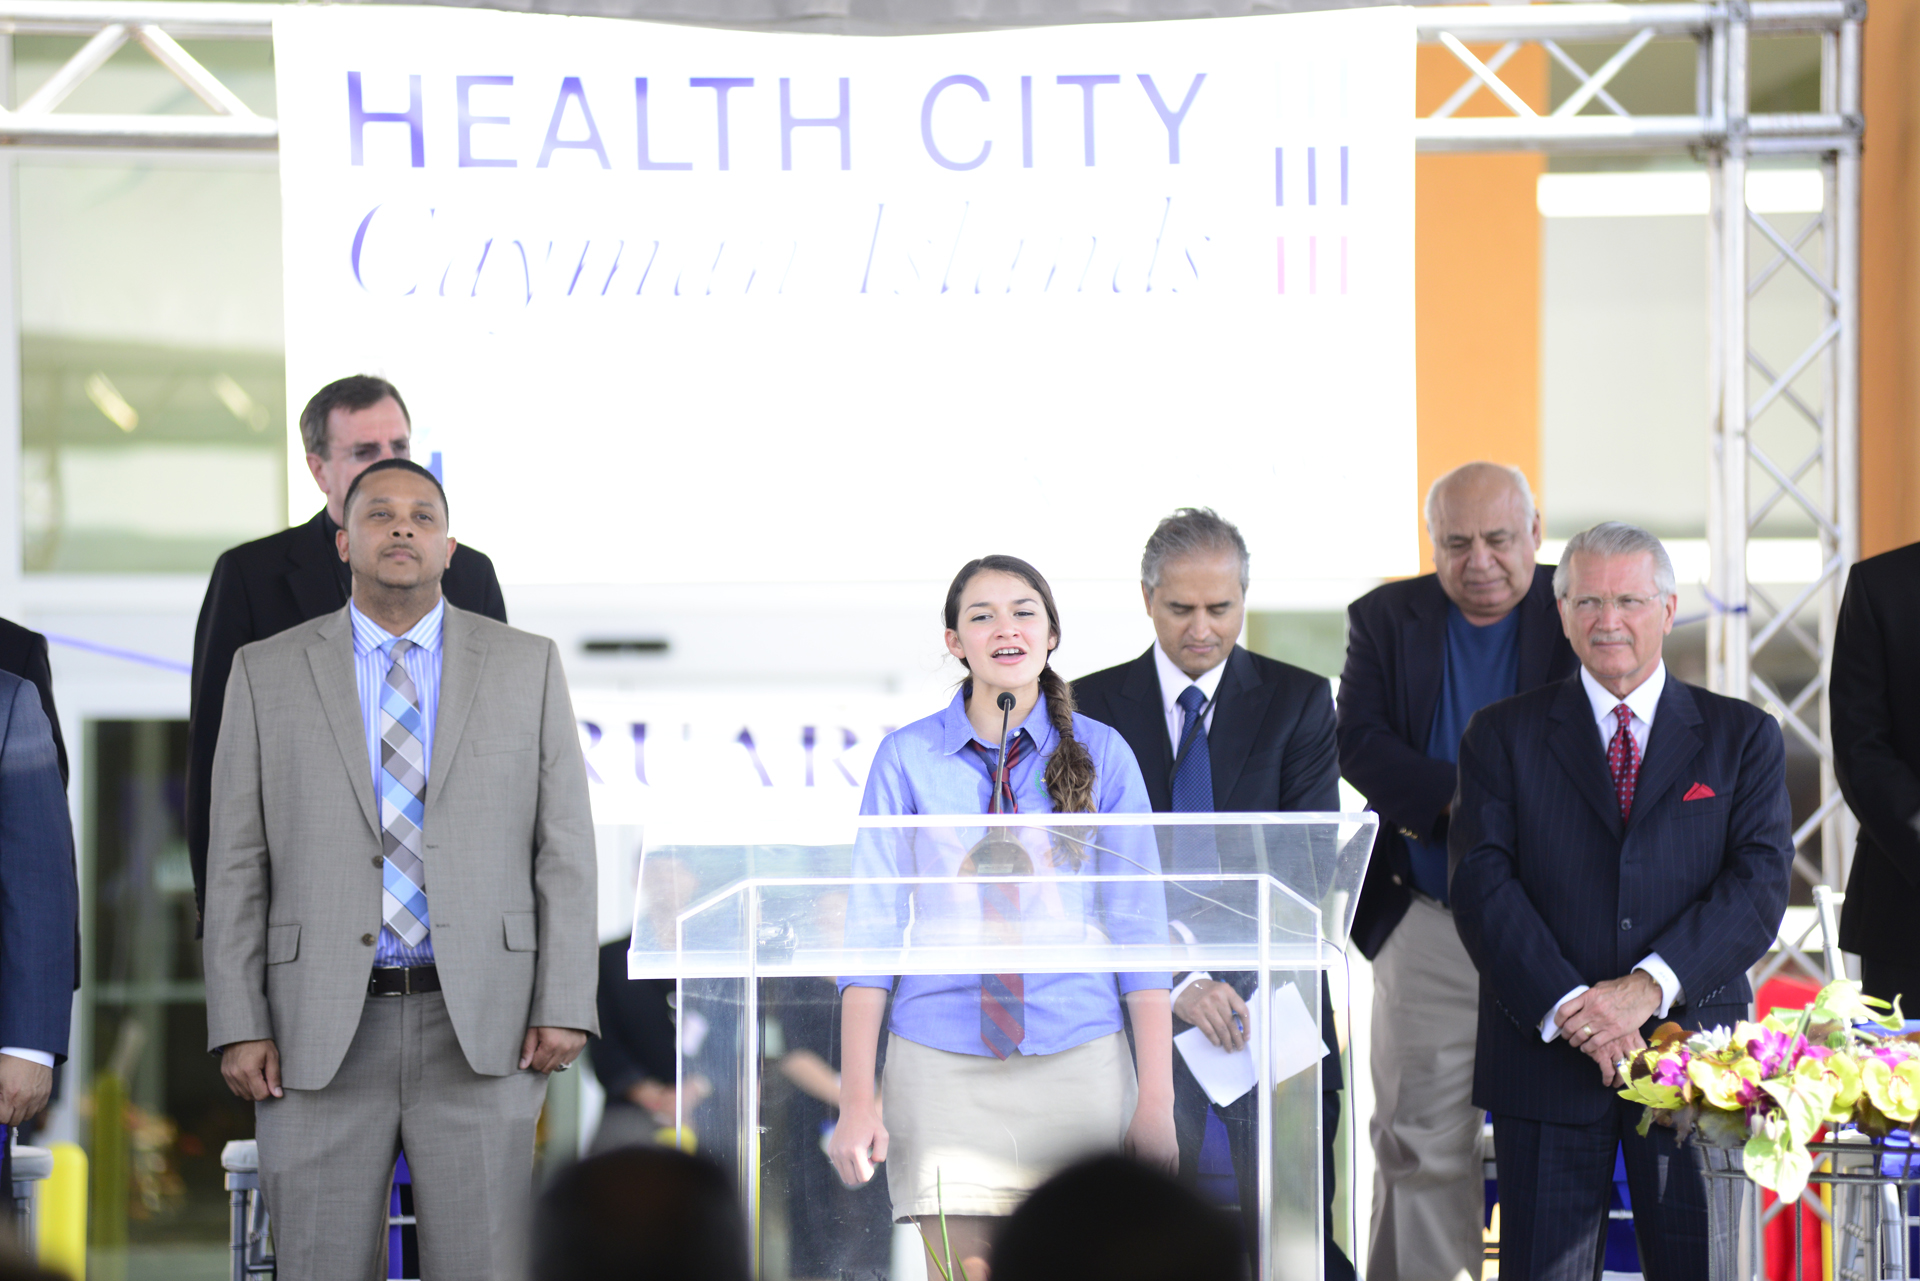 Holly Thompson, Health City Cayman Islands Grand_Opening